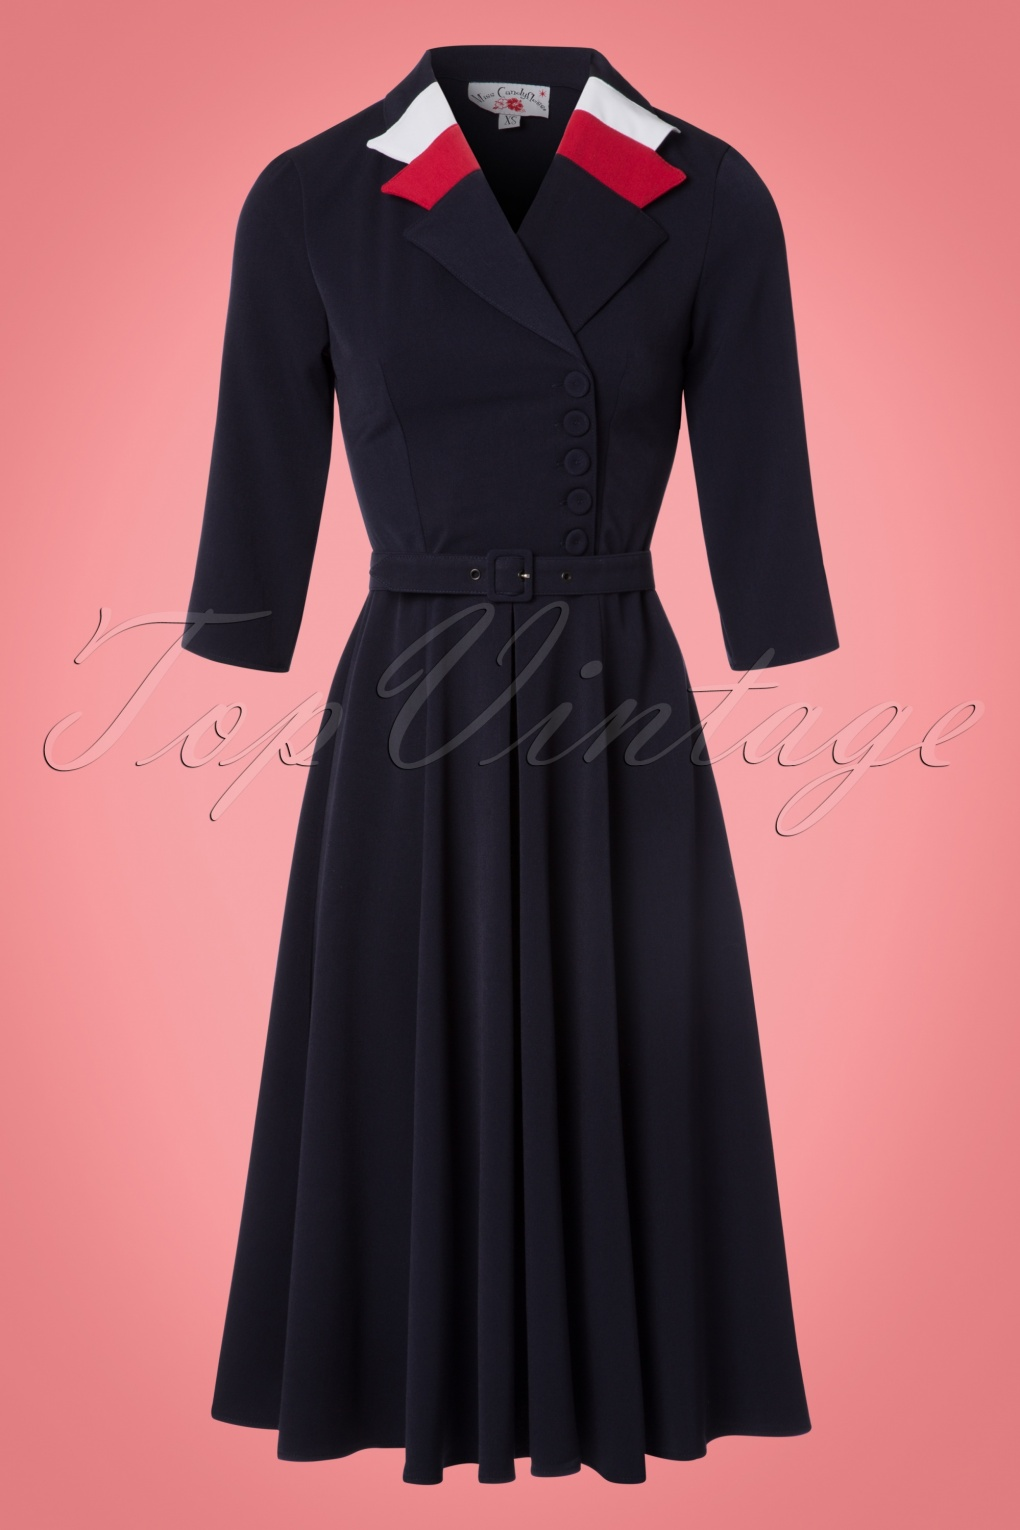 50 Vintage Inspired Clothing Stores 40s Peggy Spy Swing Dress in Navy £104.64 AT vintagedancer.com